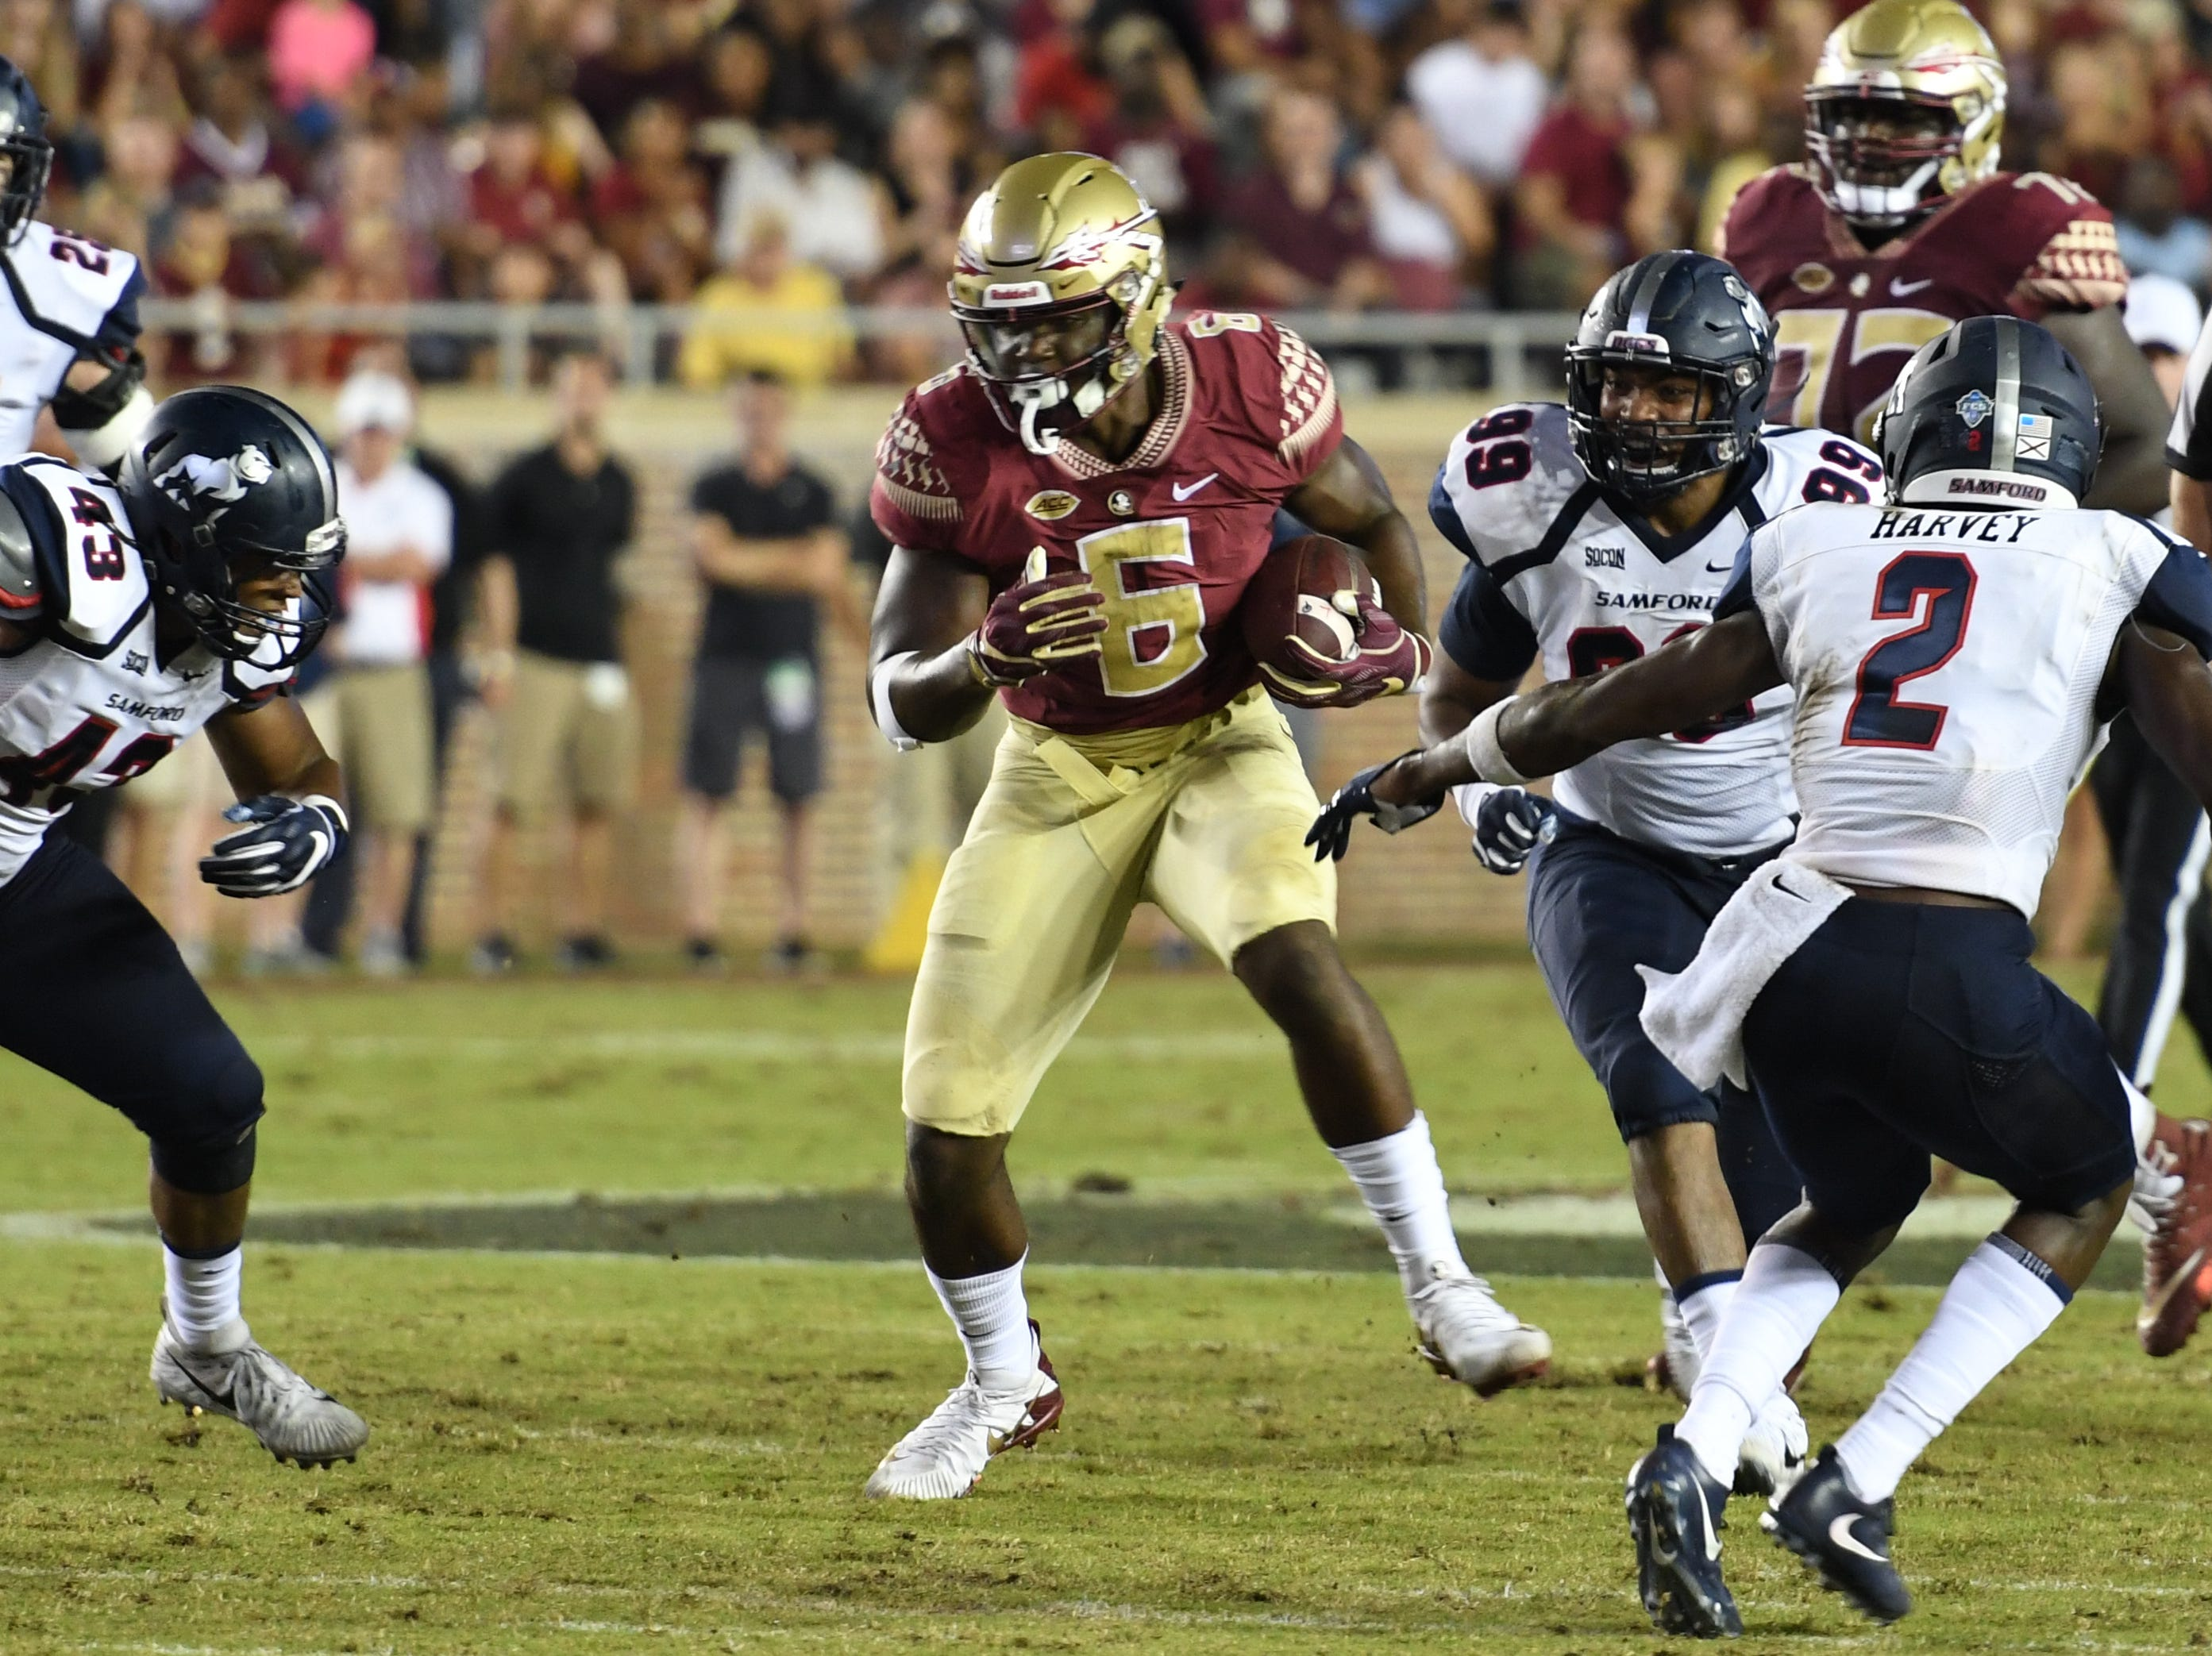 FSU sophomore tight end Tre' McKitty (6) working through the Samford defense during the second quarter of FSU's game against Samford on Saturday night at Doak Campbell Stadium.